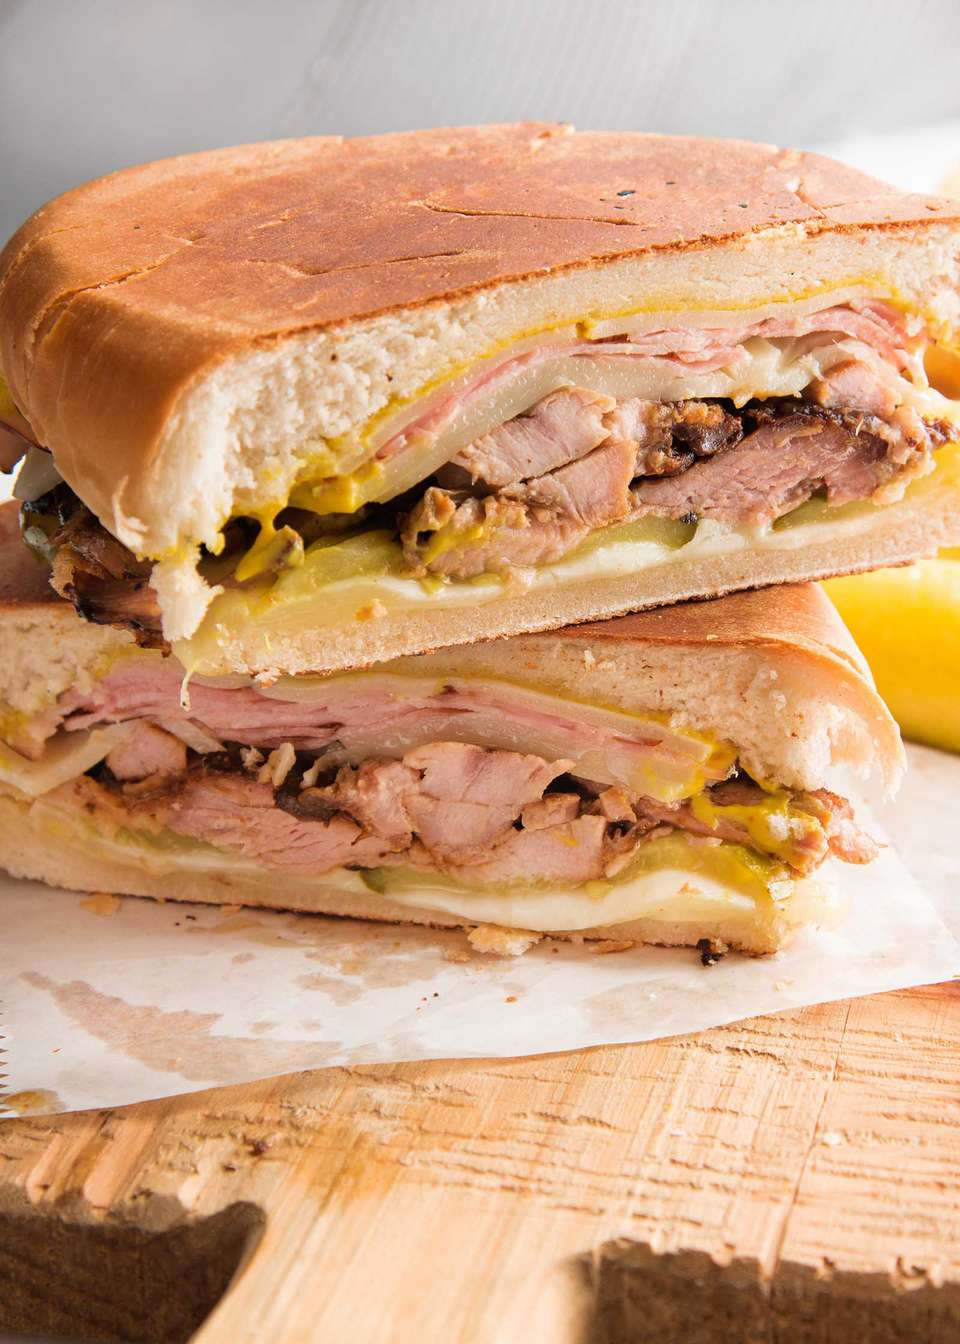 Two halves of a grilled cuban sandwich are resting on parchment paper and a wooden cutting board. The shredded pork, cheese, mustard and mayonnaise are visible.